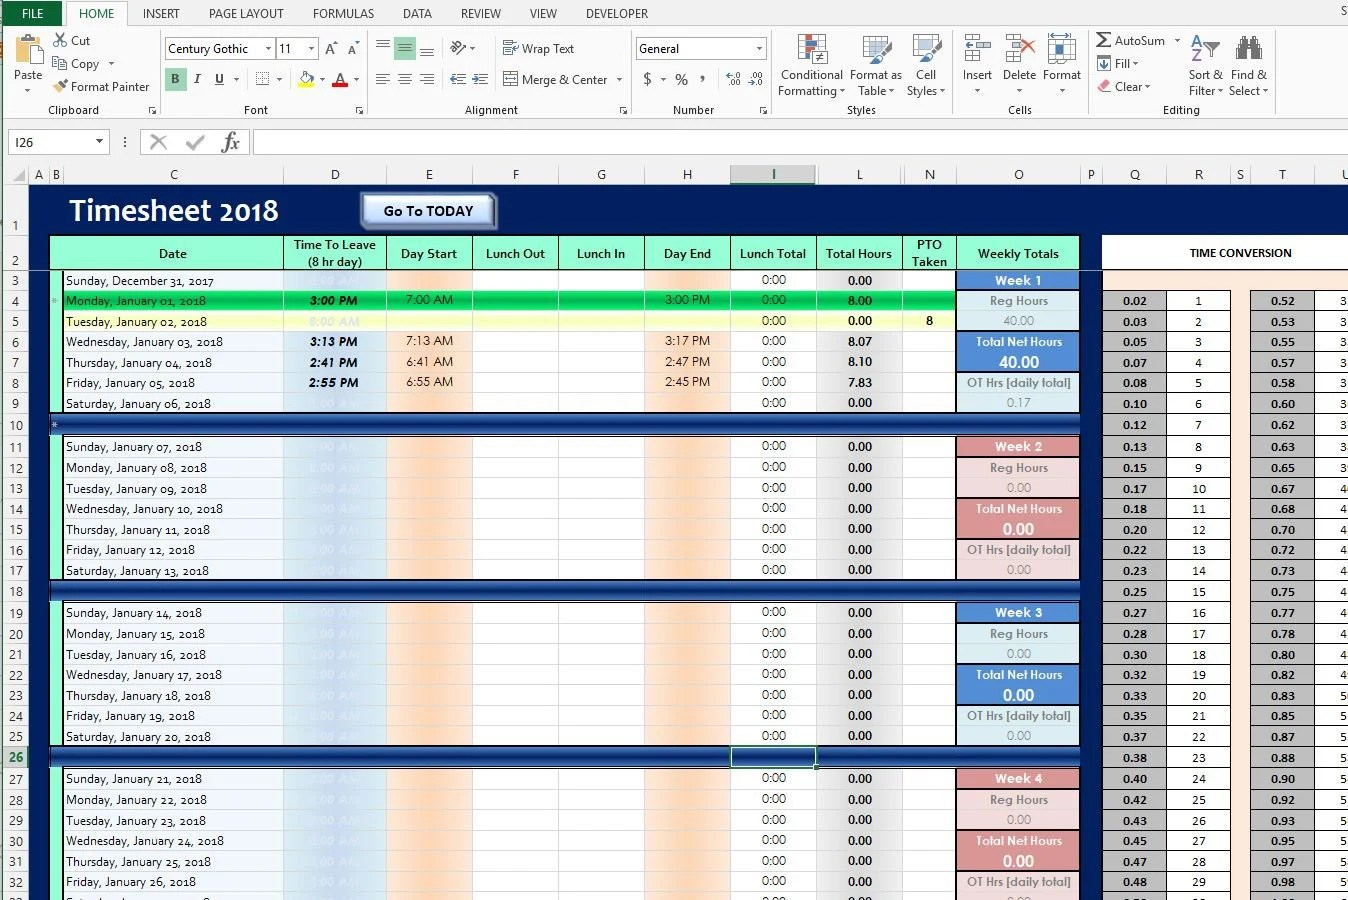 Microsoft Excel 2019 TIMESHEET Yearly Time Tracker INSTANT Etsy